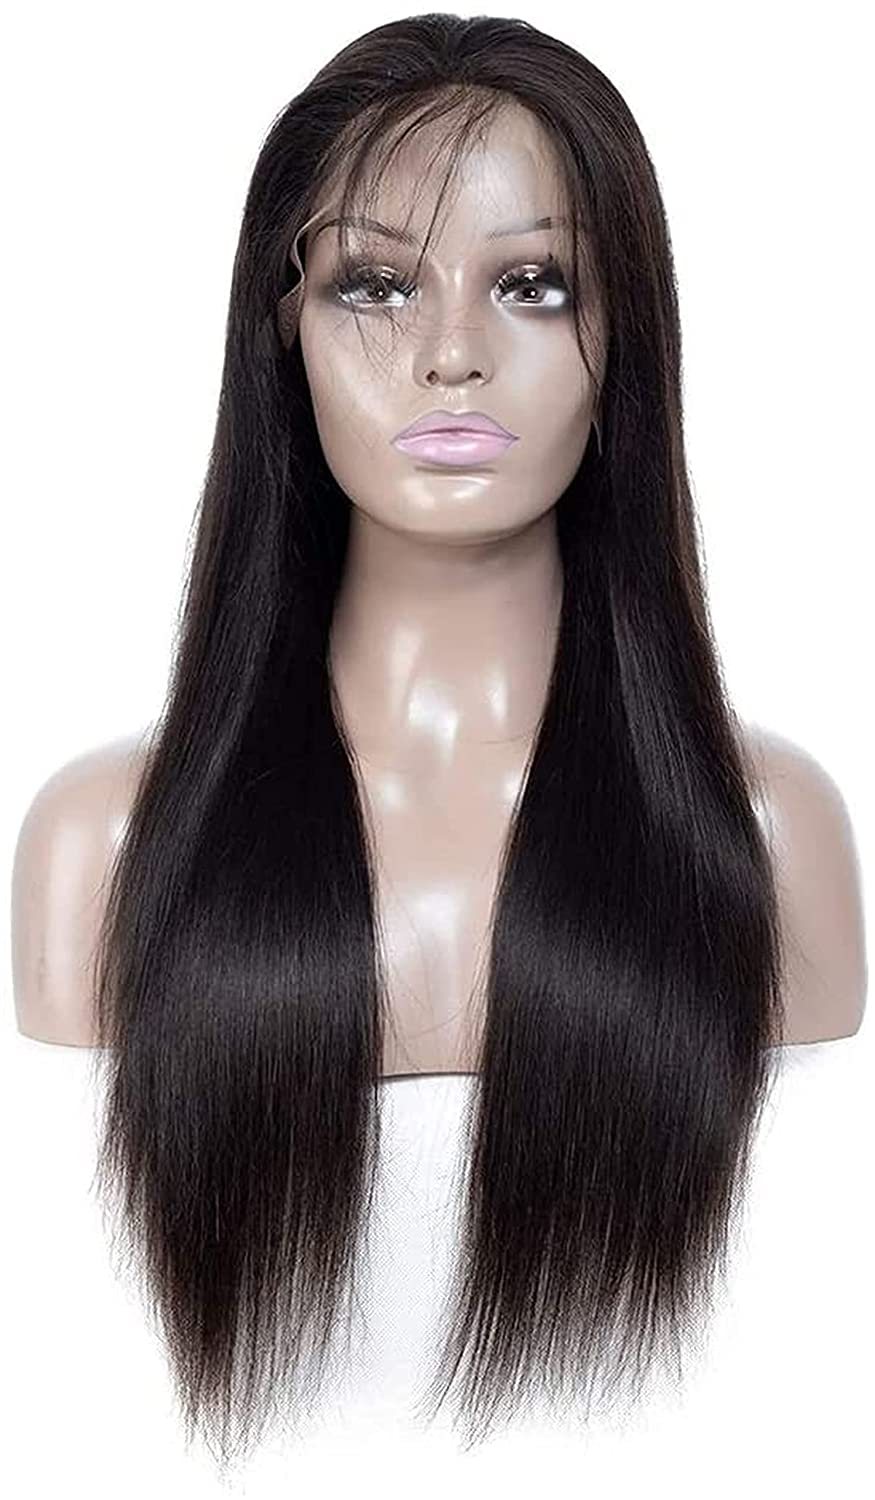 Cosplay Beautiful Wigs High quality Real Human W and Black African Ranking TOP10 Hair